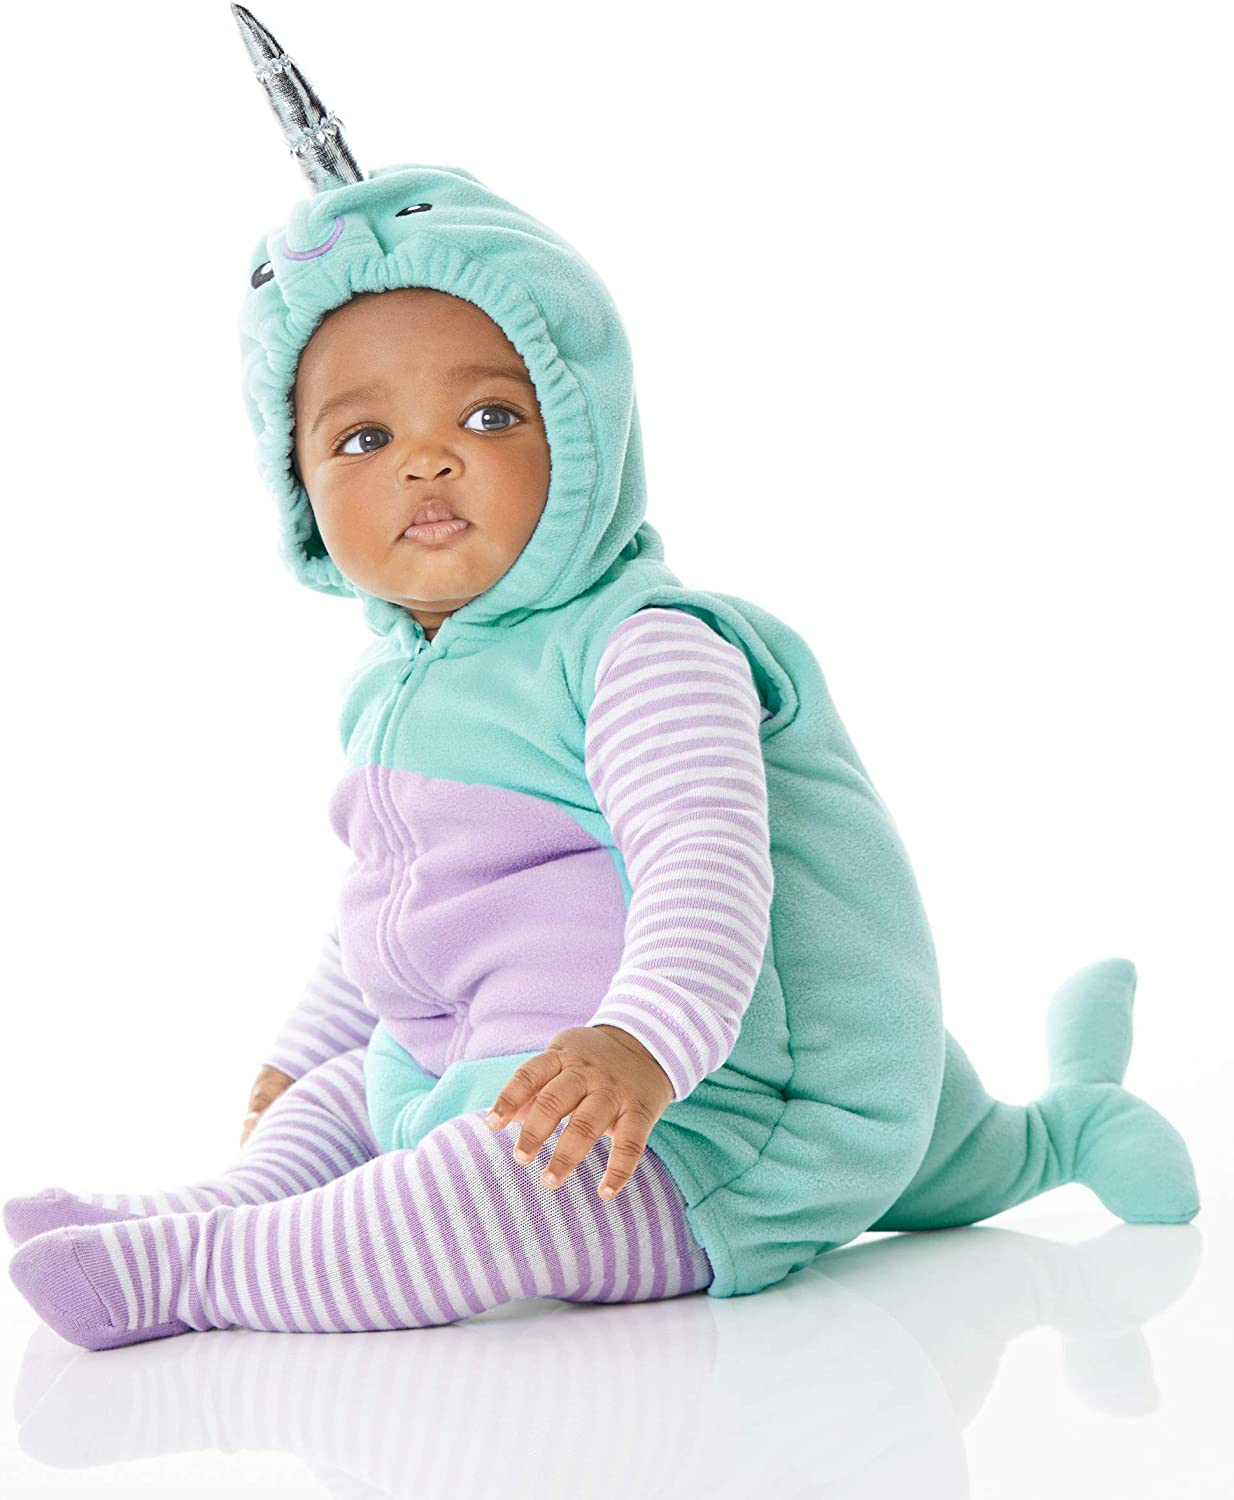 Carters Little Sloth Halloween Costume Size 3//6 Months Boys 2 Piece Set